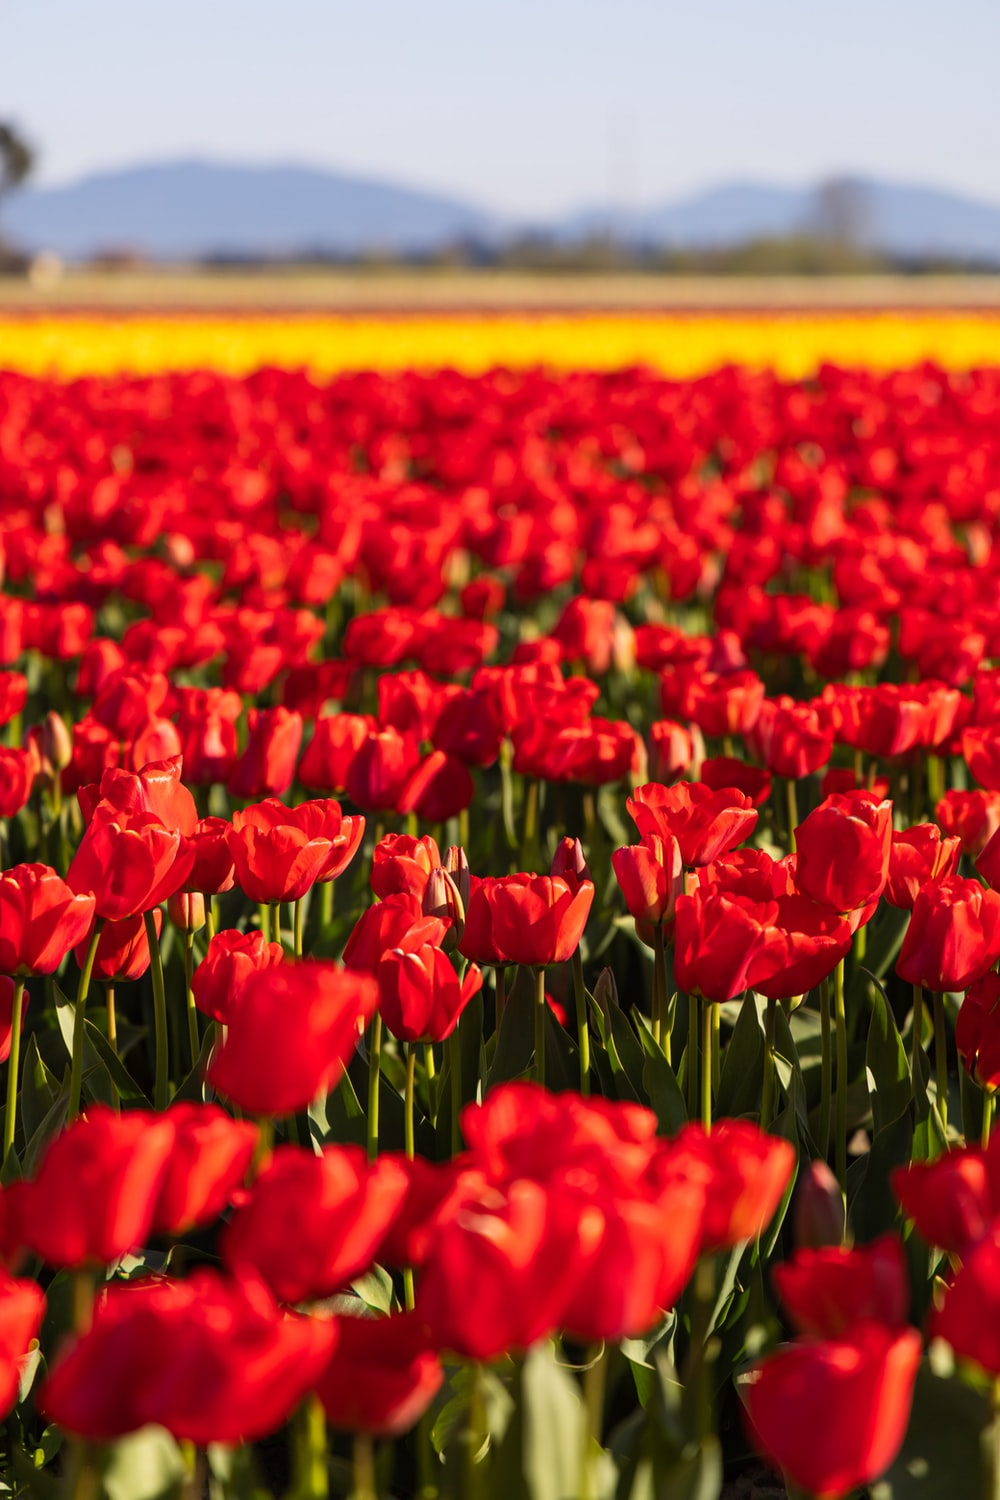 red tulips field during daytime